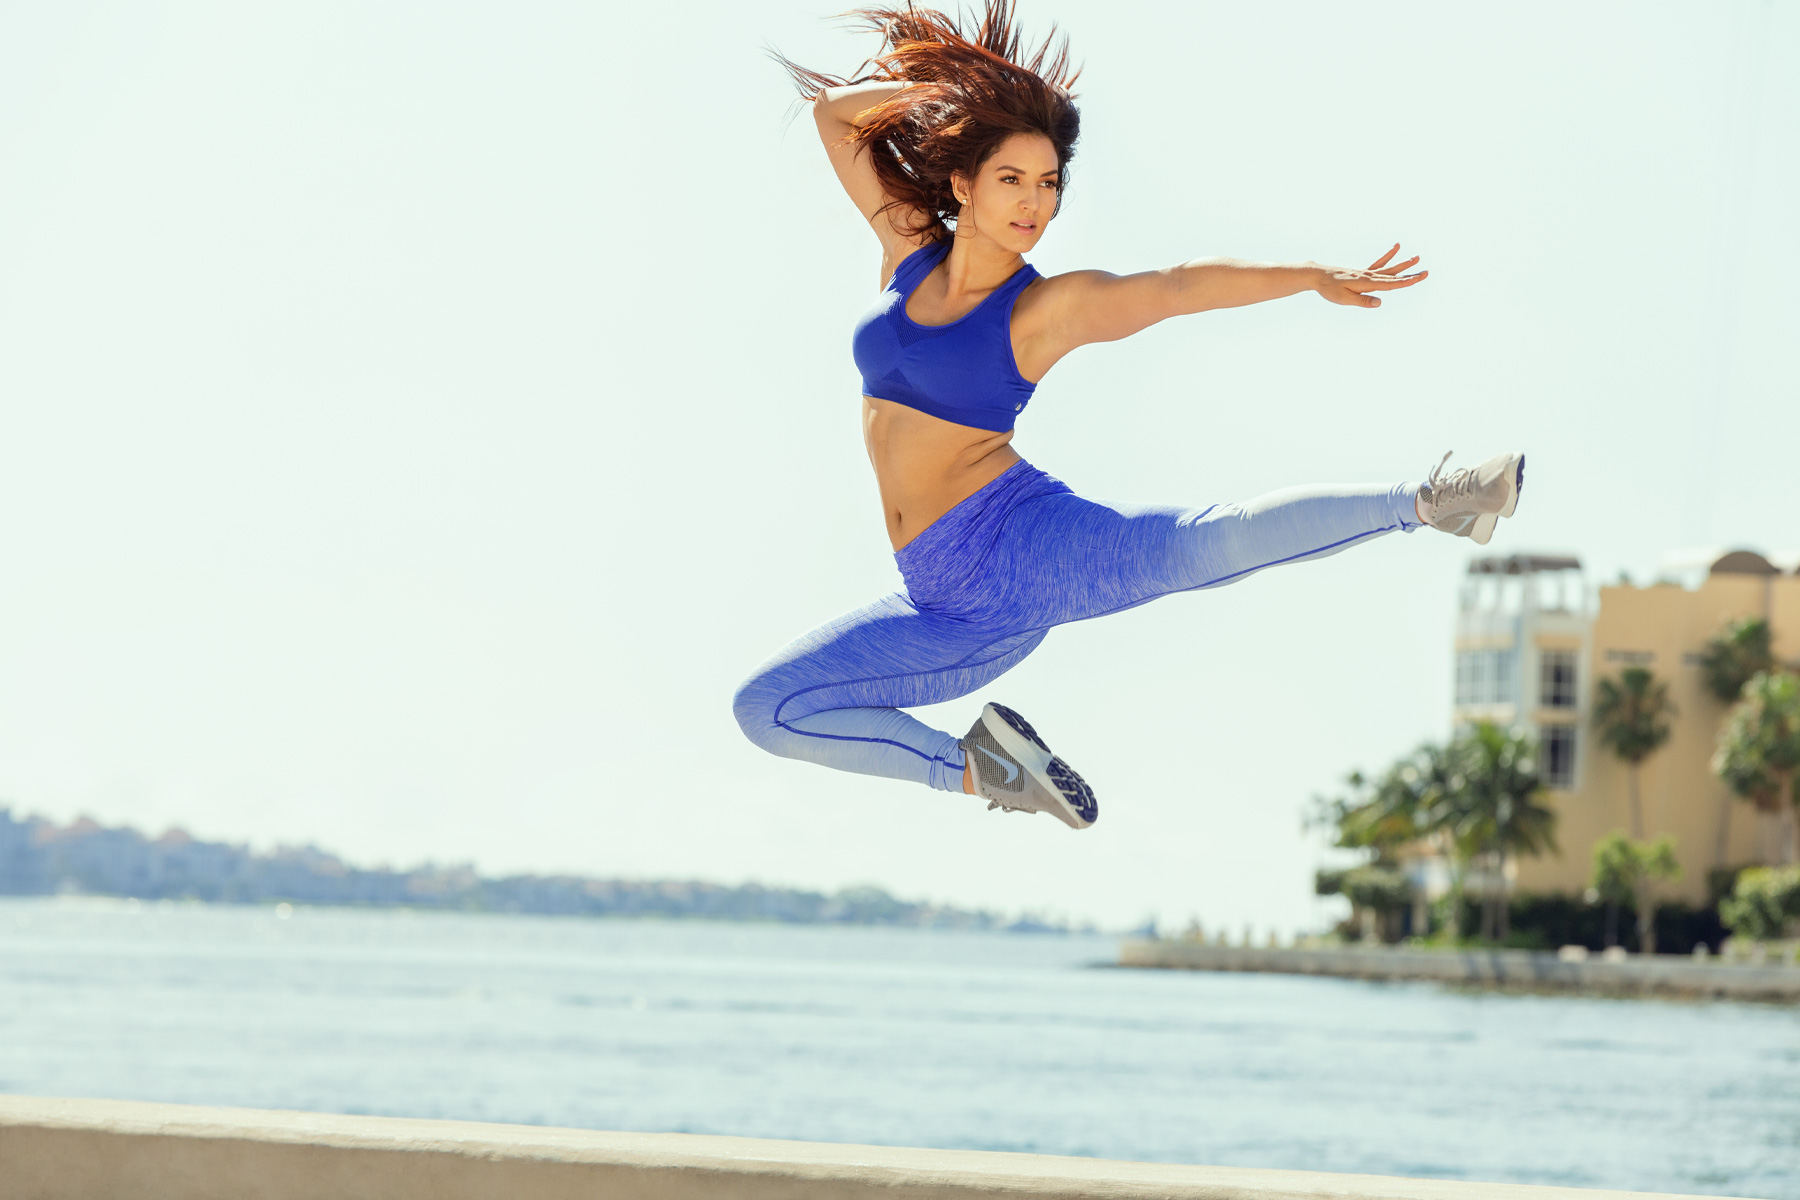 miami_fitness_lifestyle_jump_dancer_photography_david_gonzalez_all_smiles_outdoor_workout_training.jpg